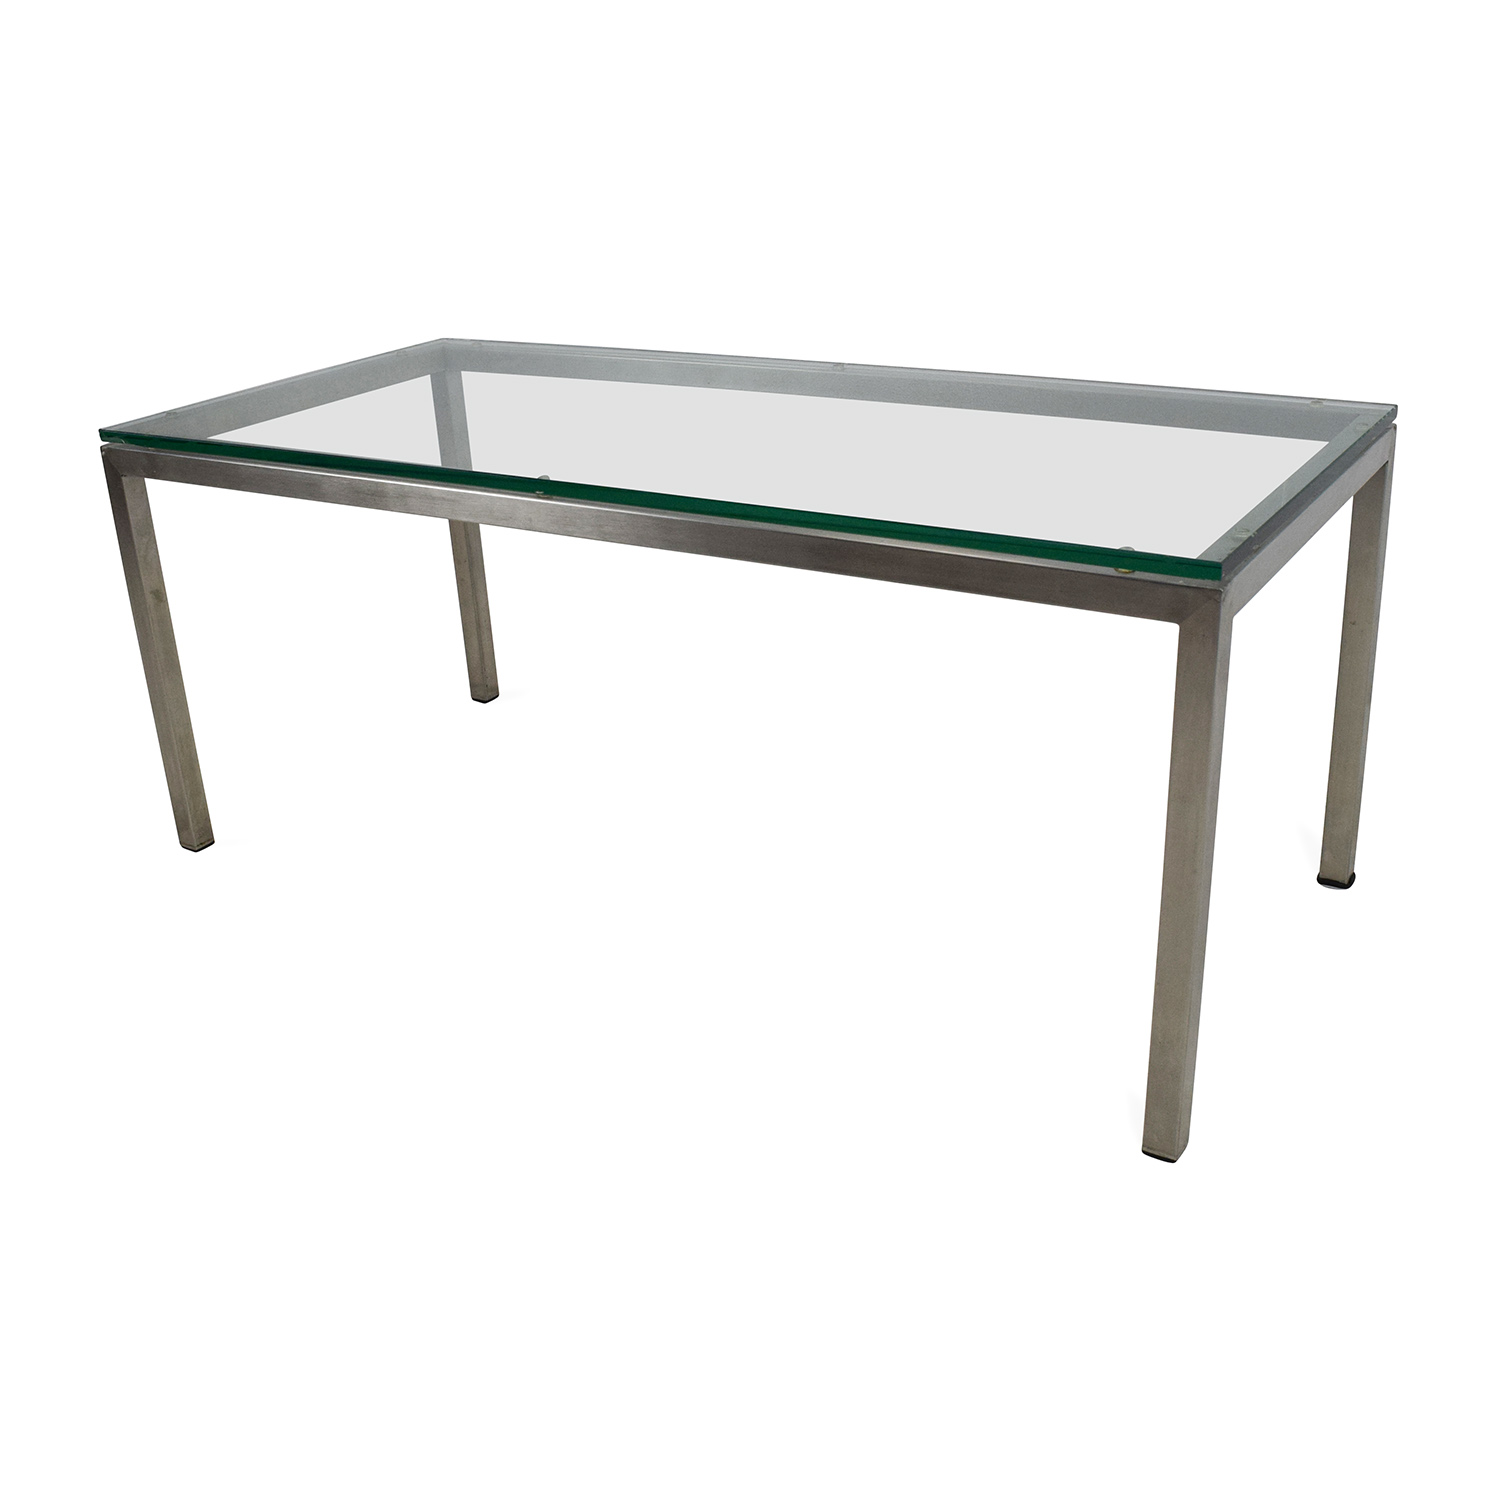 82 off room and board room and board glass coffee table tables Coffee table buy